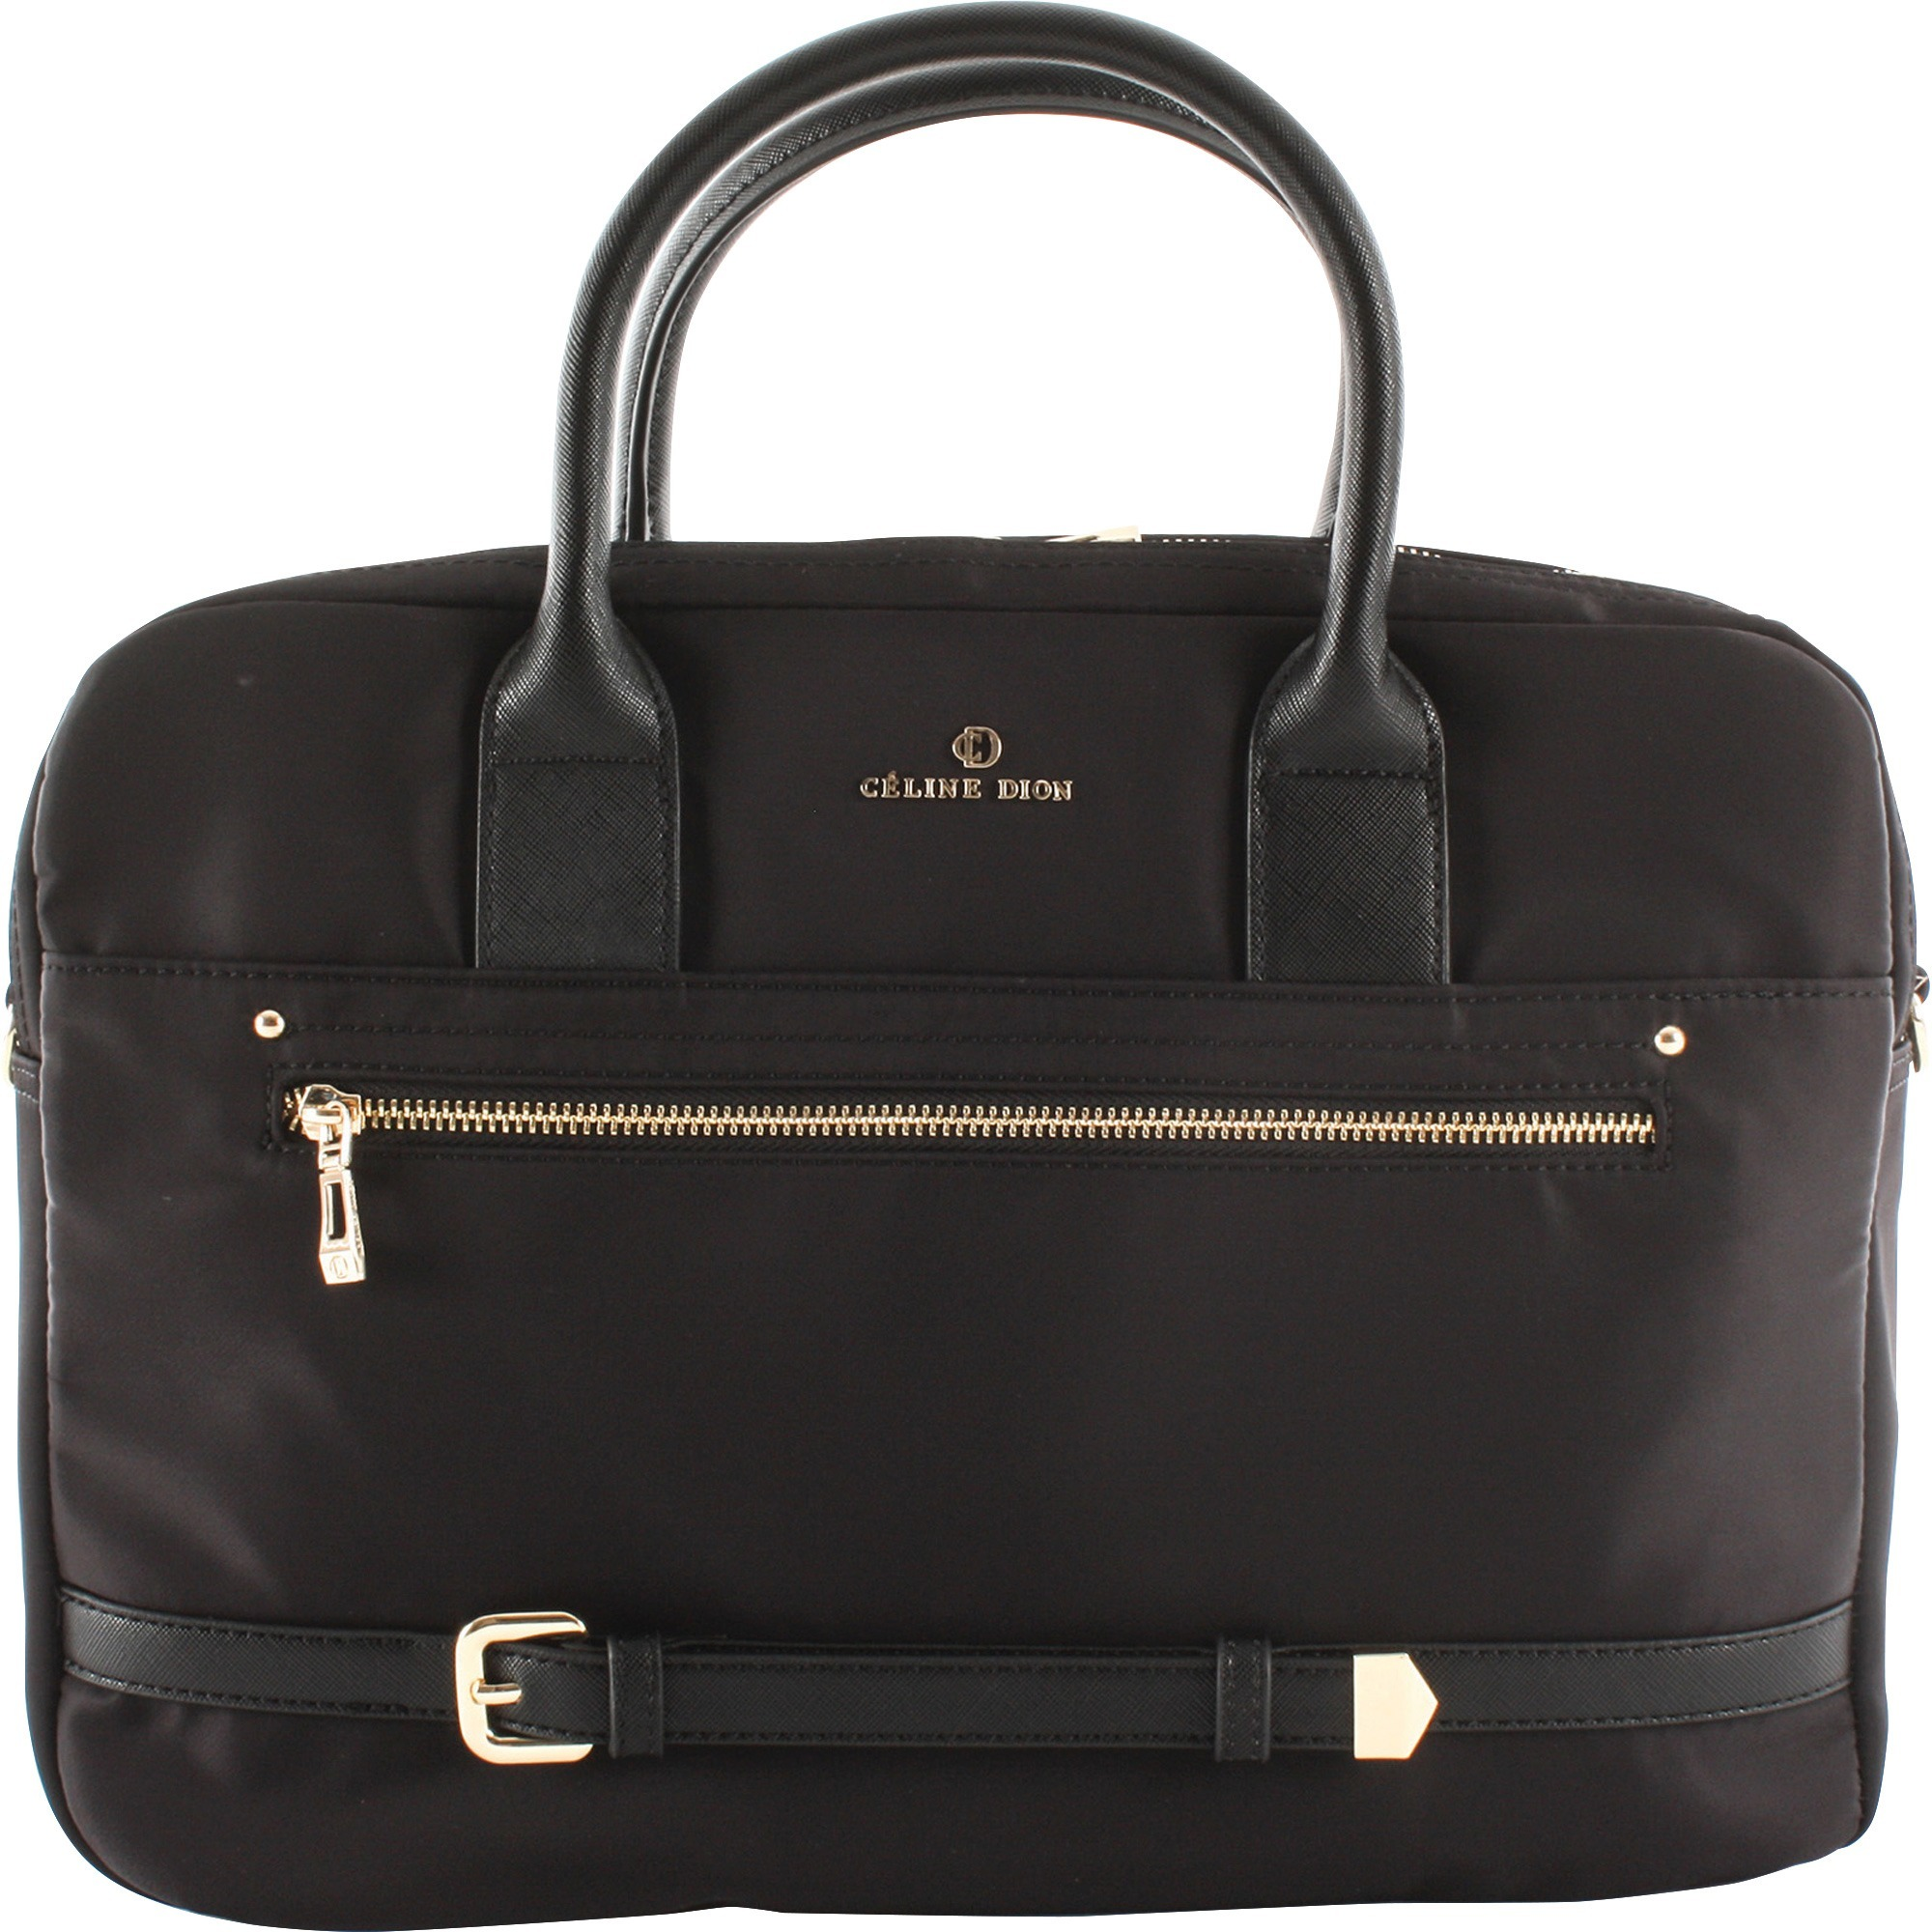 "bugatti Carrying Case (Briefcase) Travel Essential - Black, Gold - Nylon - Shoulder Strap, Belt - 10"" Height x 3"" Width x 14"" Depth"